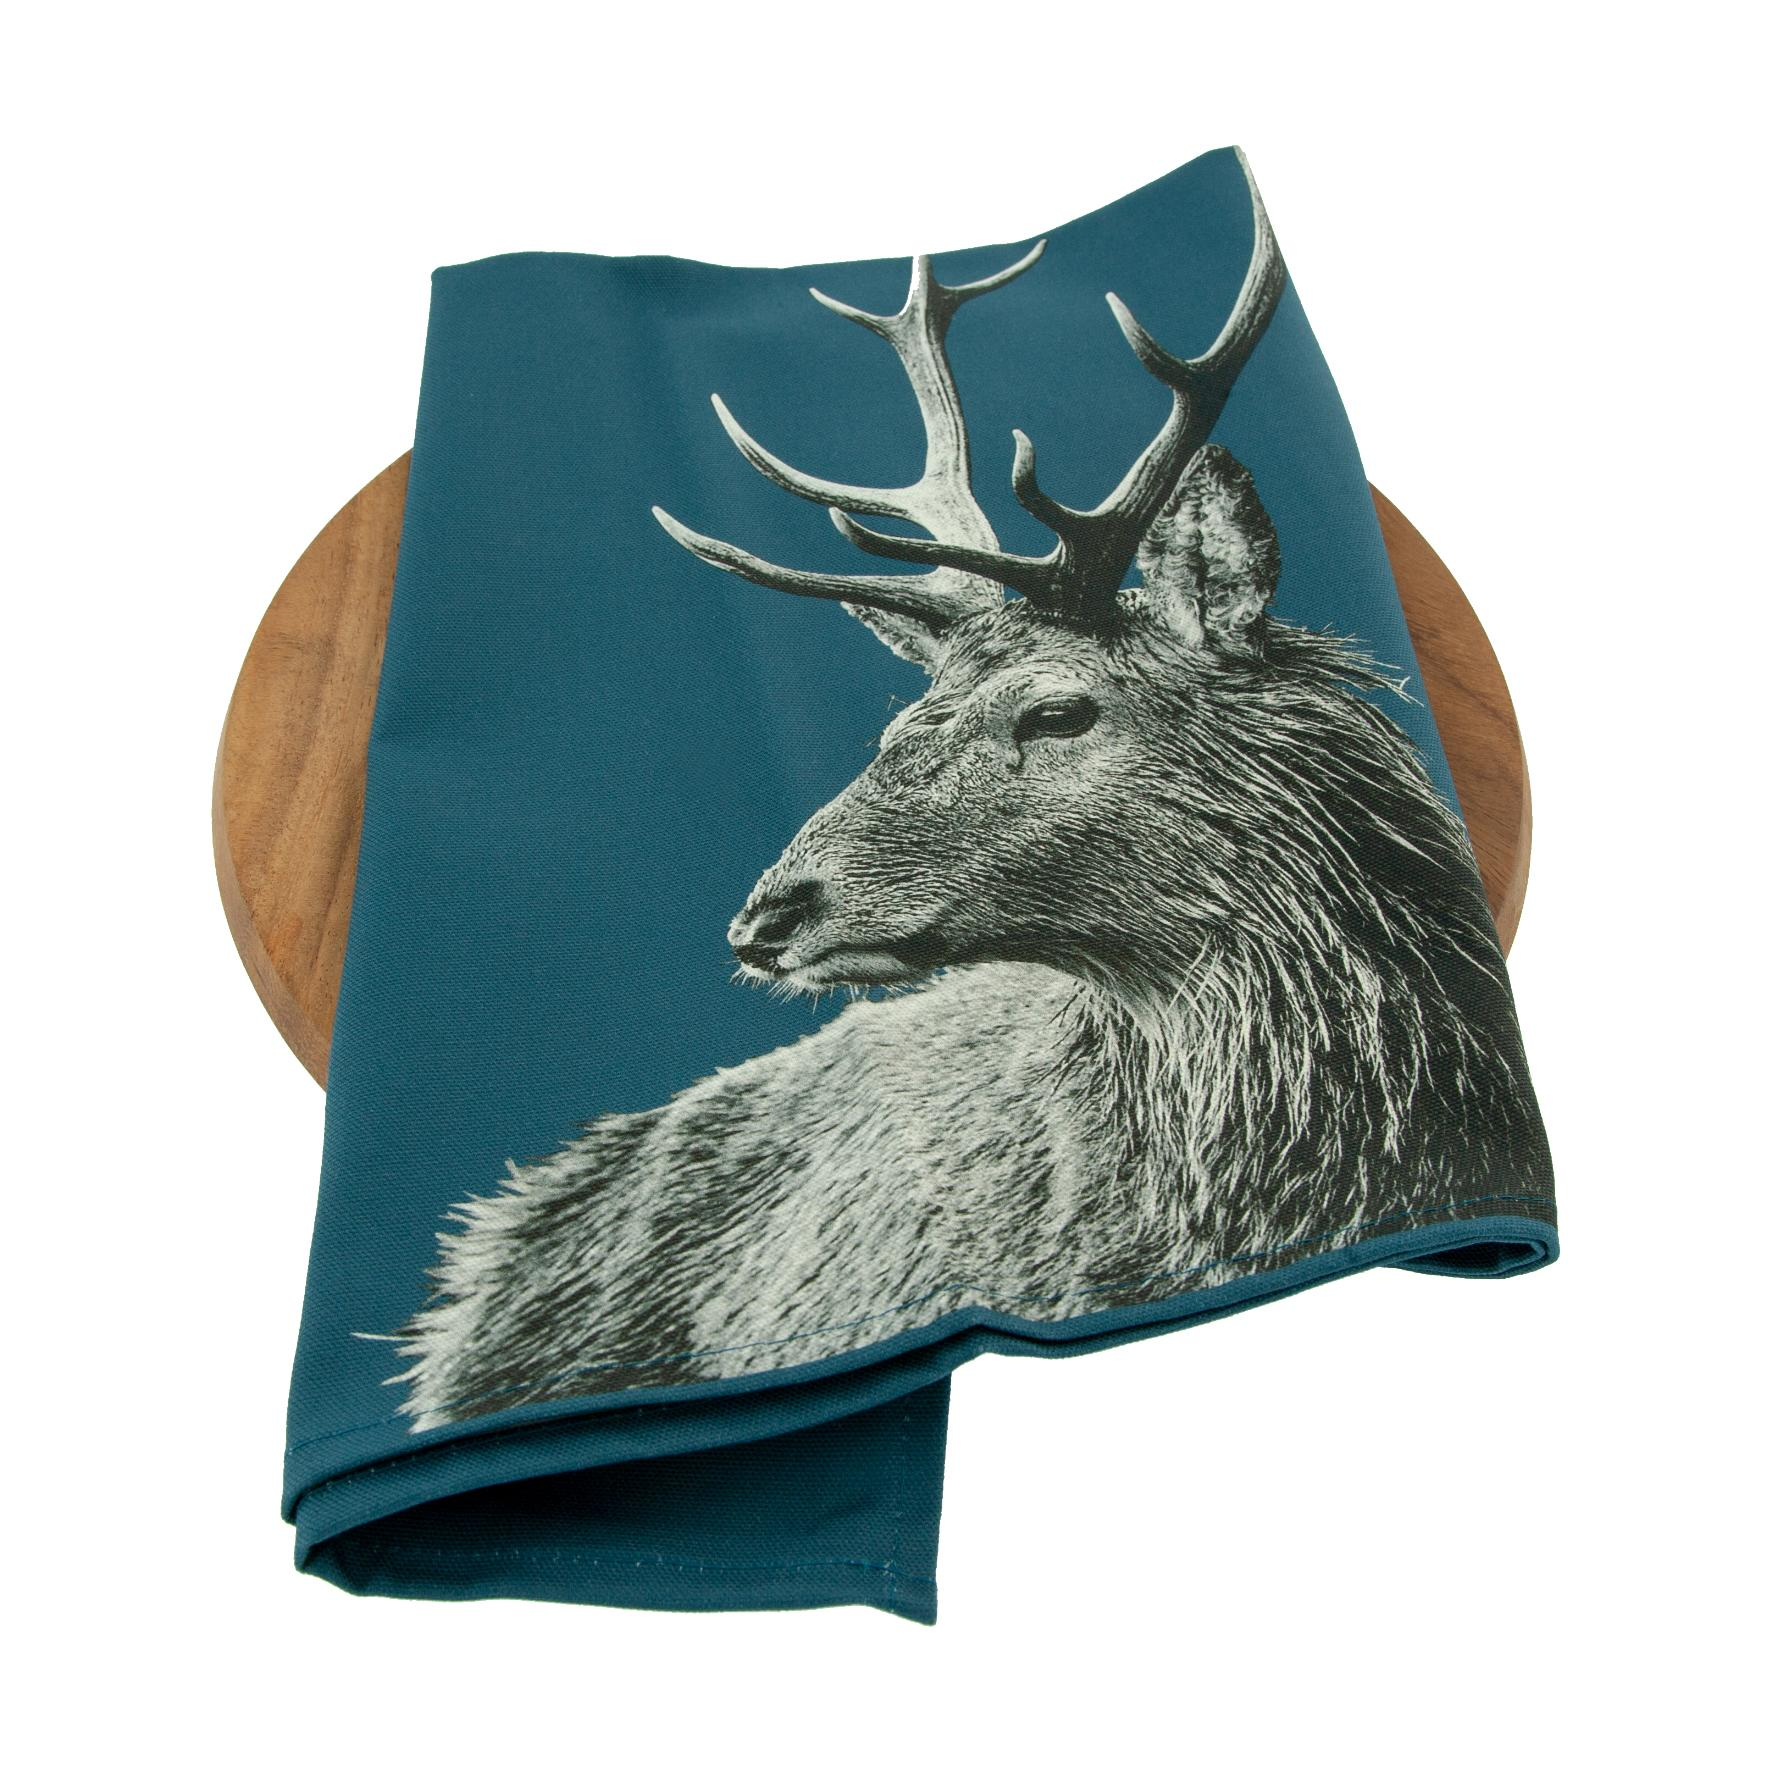 Highland Stag tea towel on indigo